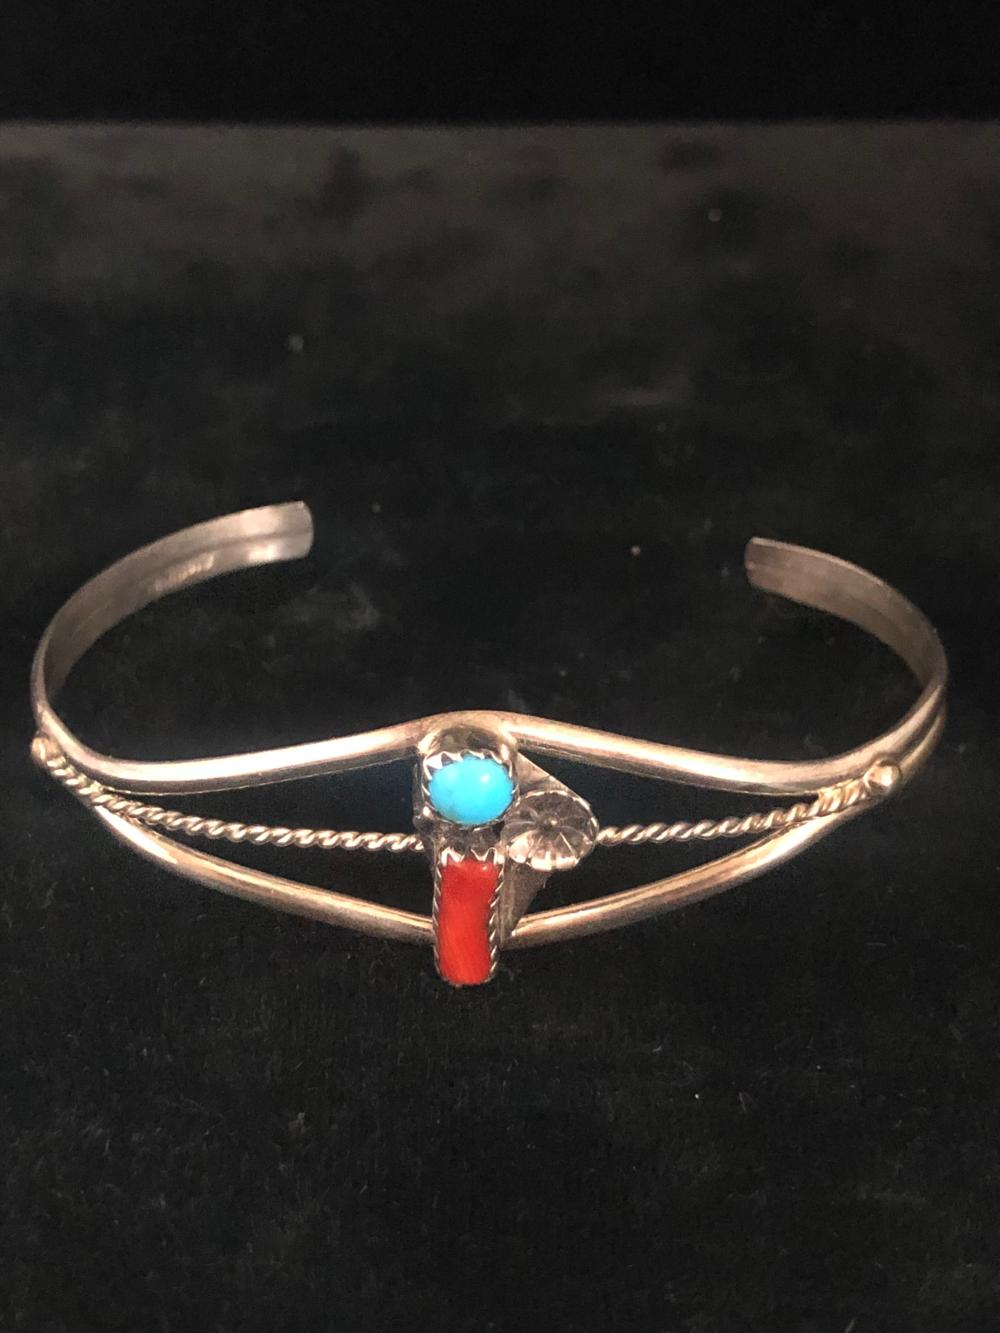 Turquoise and coral stone sterling silver cuff bracelet